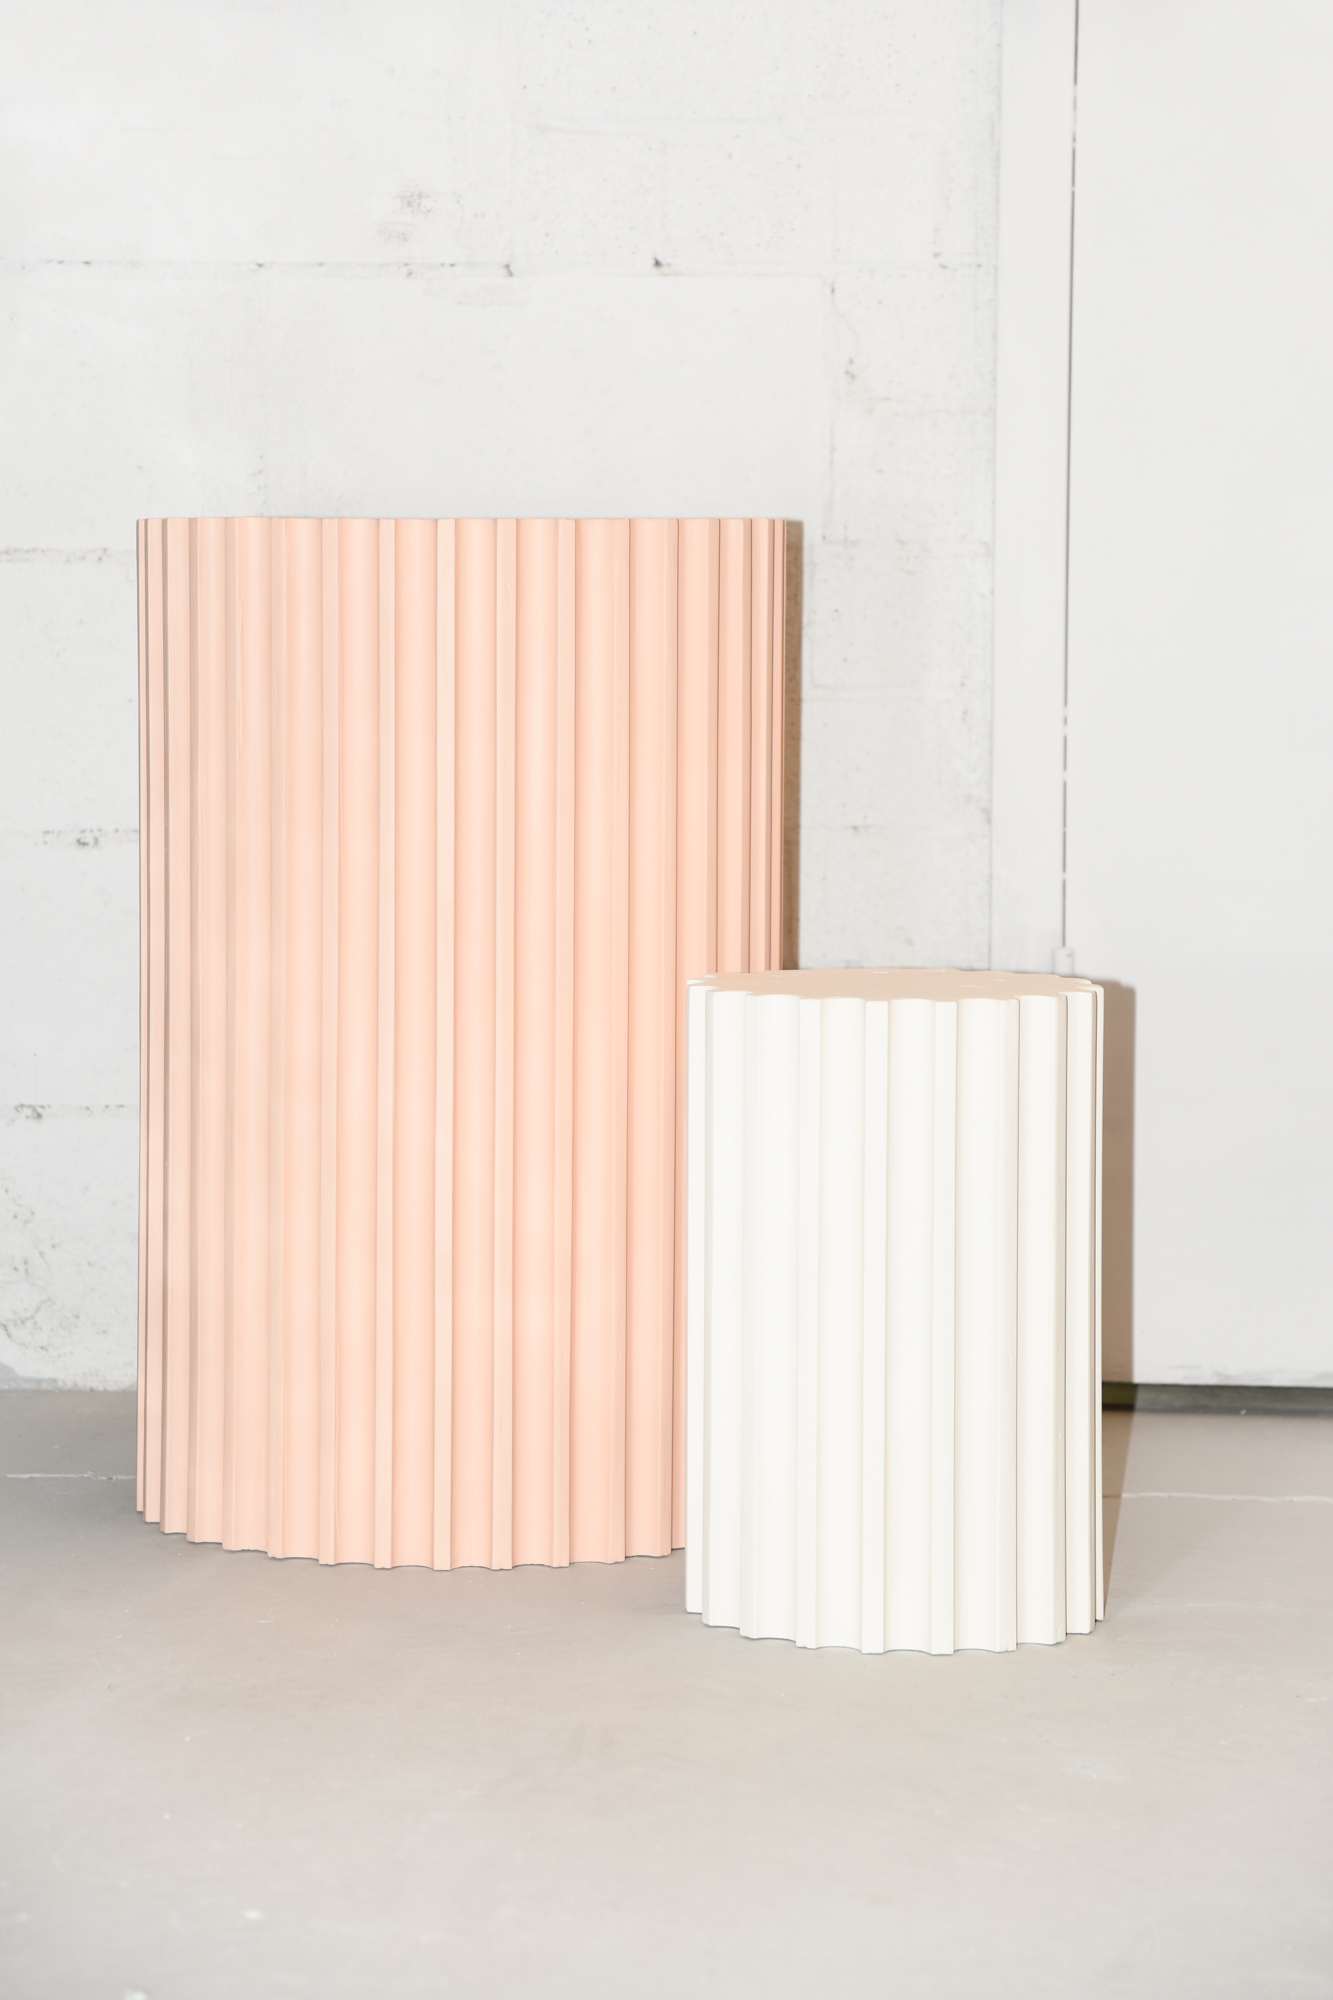 Plaster and wood // Pedestals